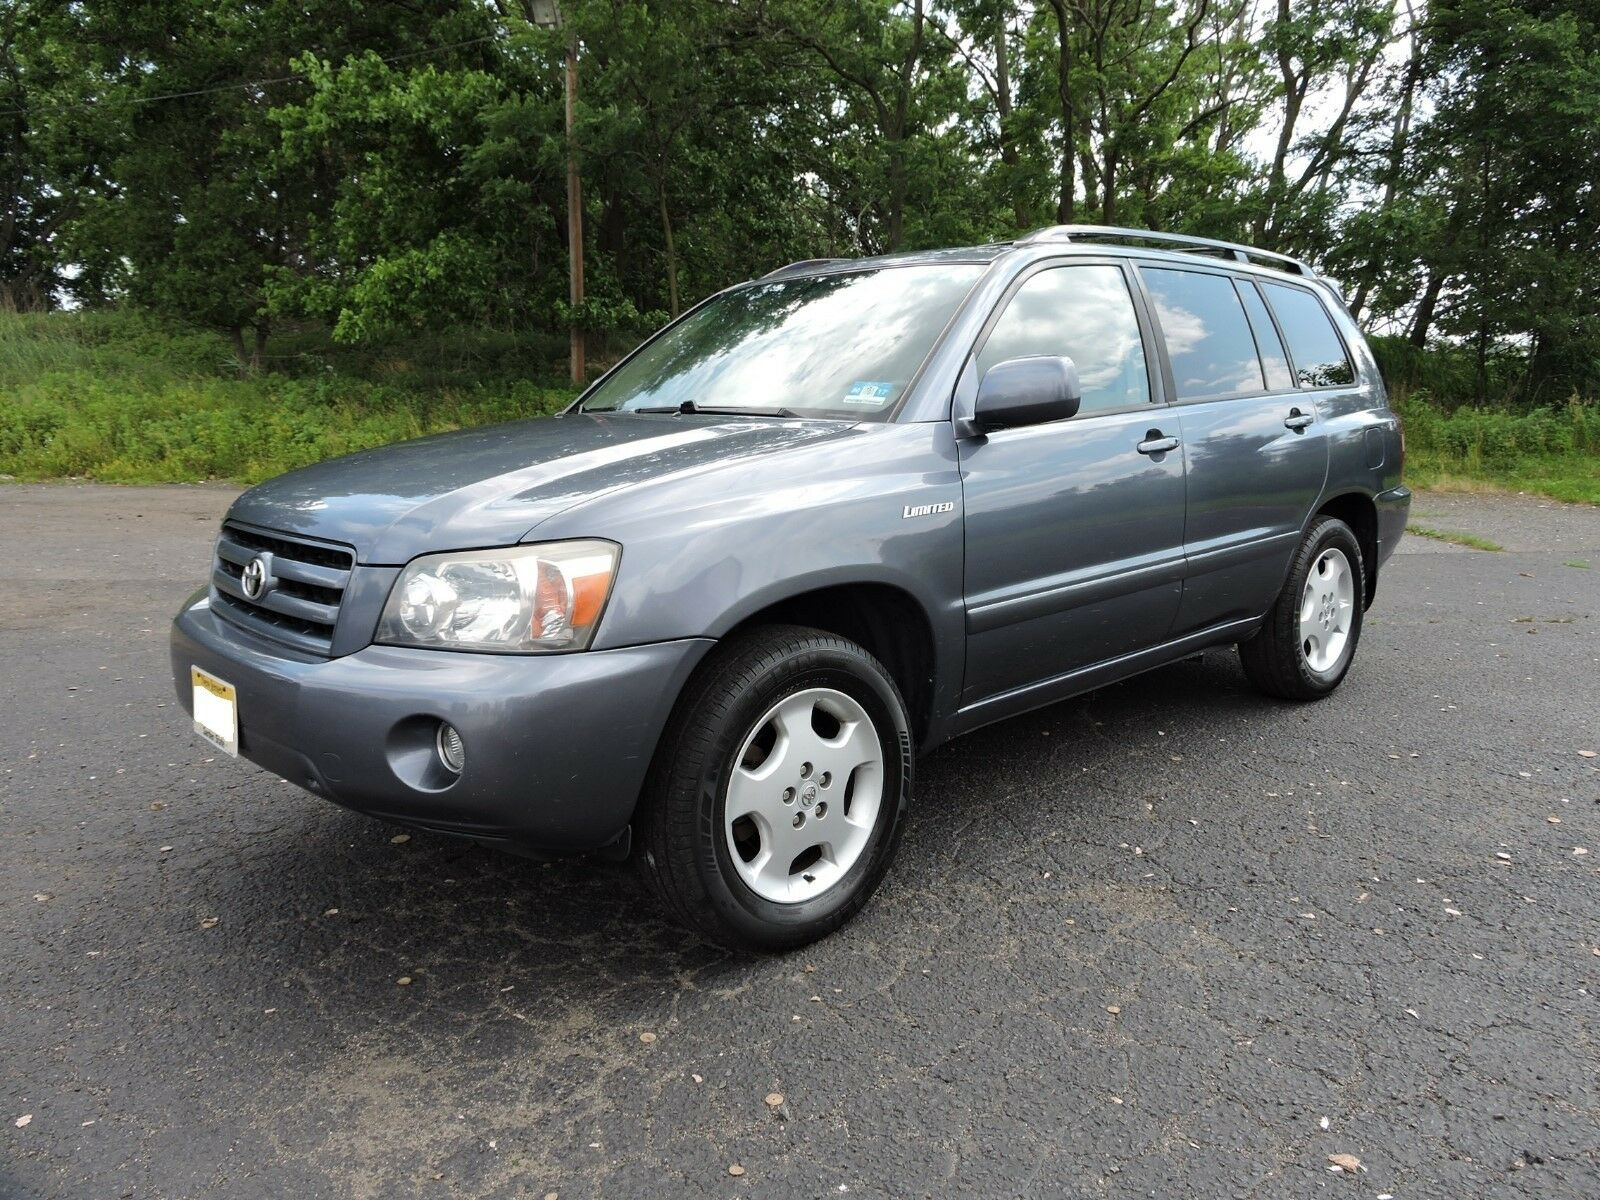 2005 Toyota Highlander Limited AWD V6 Navigation 2005 Highlander LTD AWD. All Options. 3rd Row. NAVIGATION. All Service Records.